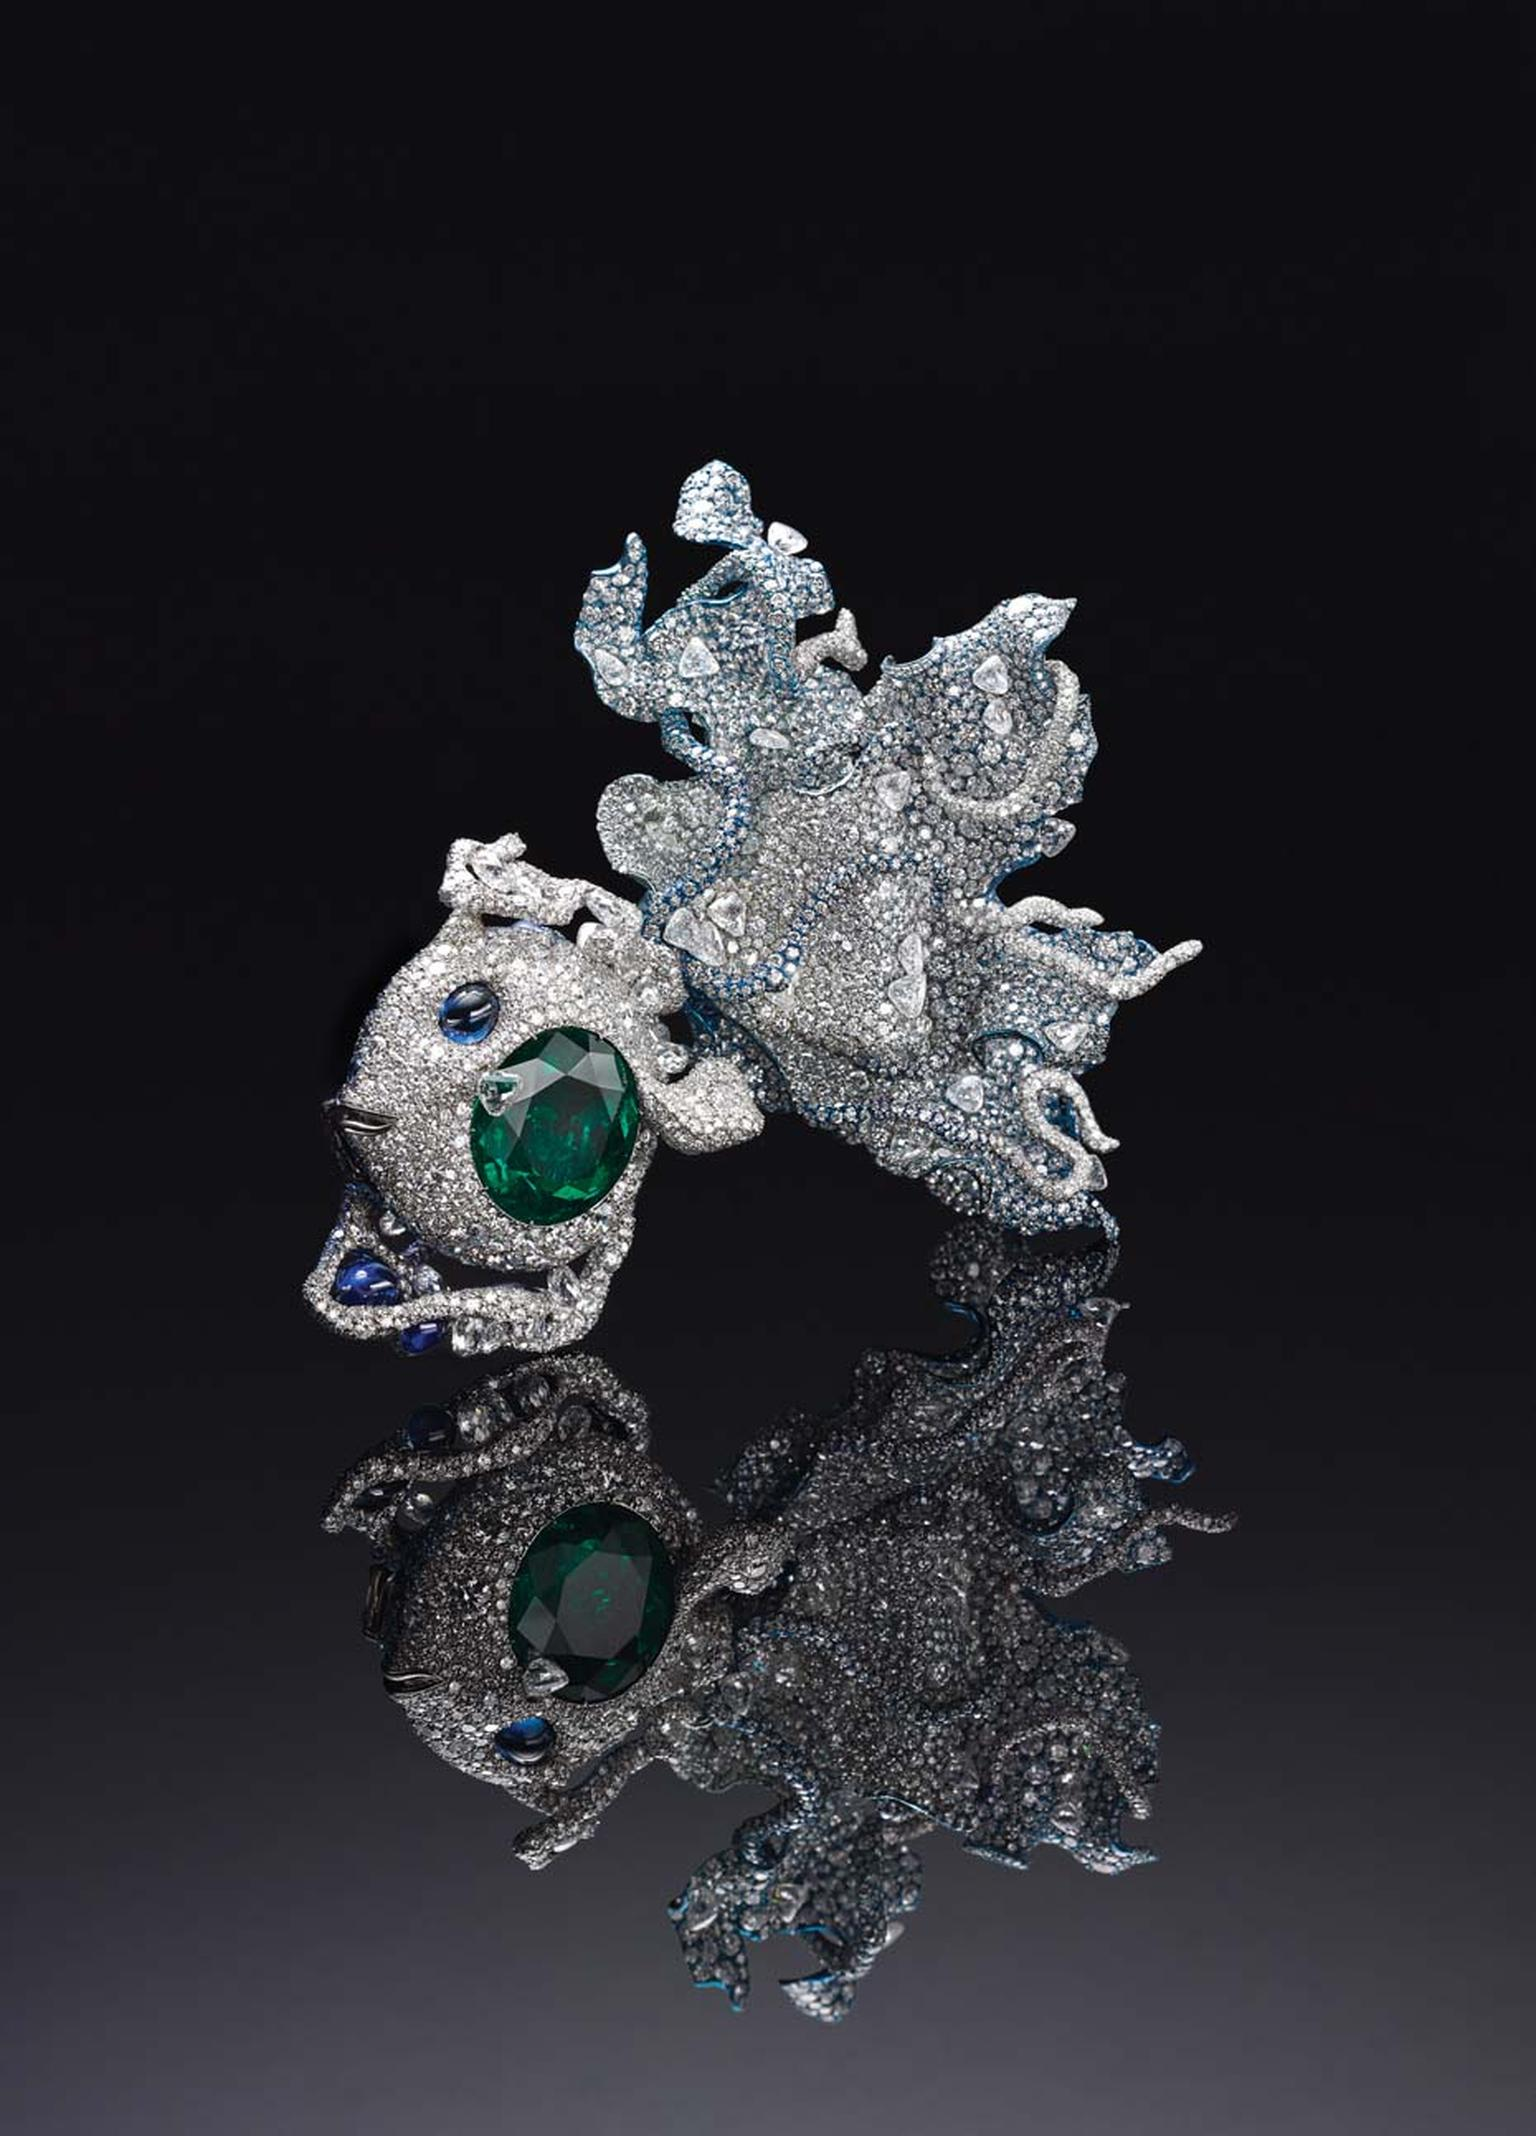 Cindy Chao Black Label Masterpiece Puffer Fish brooch featuring Colombian emerald cheeks and an undulating tail, with 5,000 diamonds set at every angle.